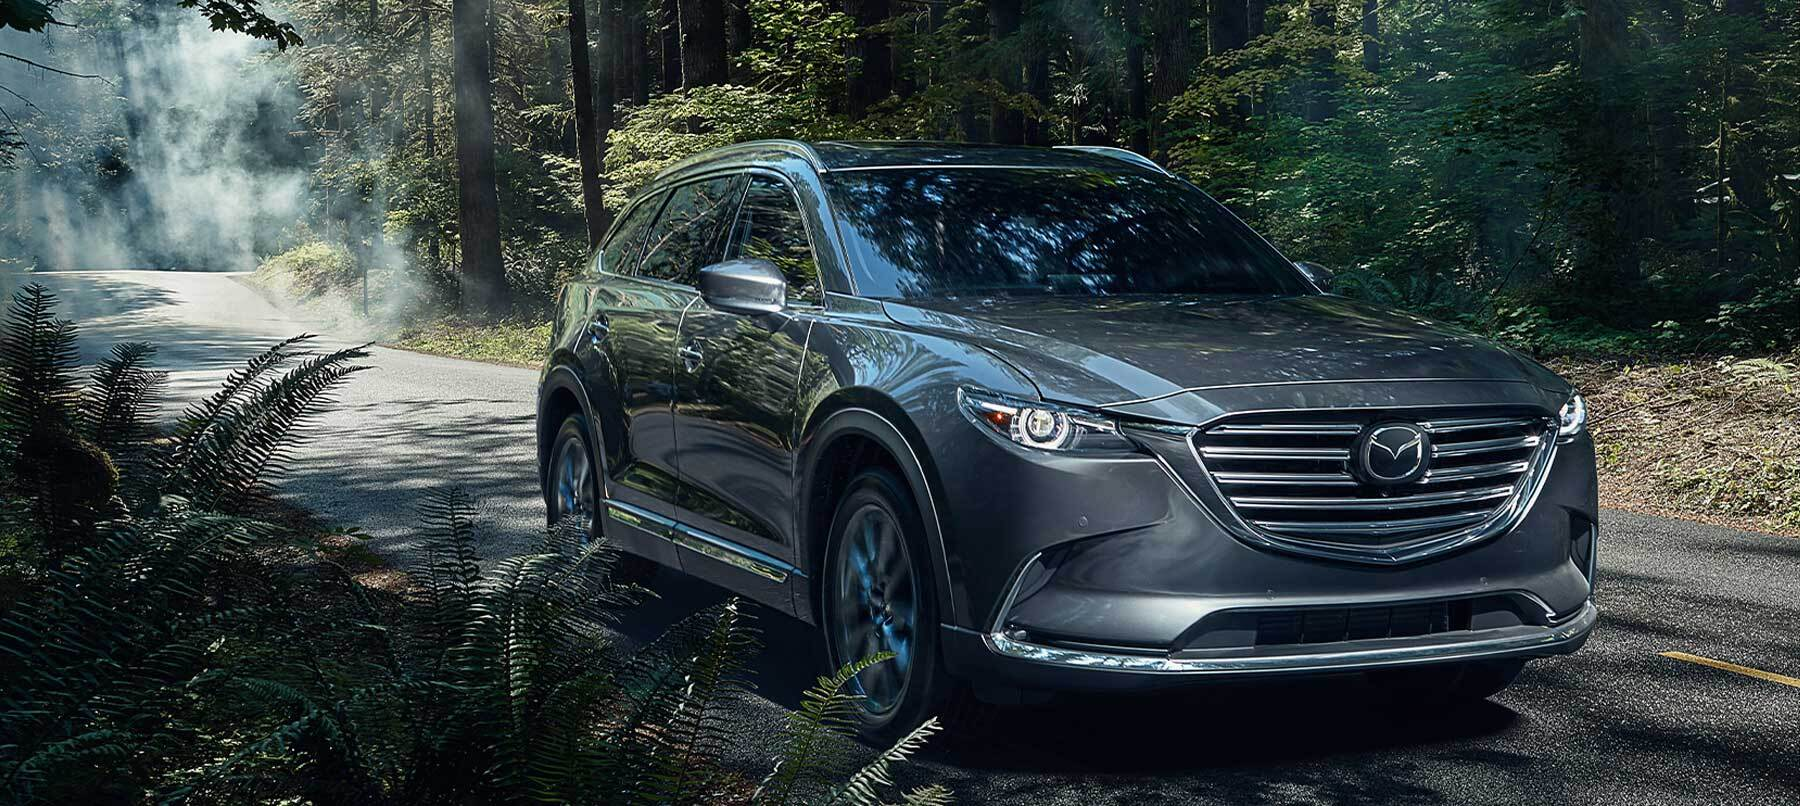 2020 Mazda CX-9 in Las Vegas, NV